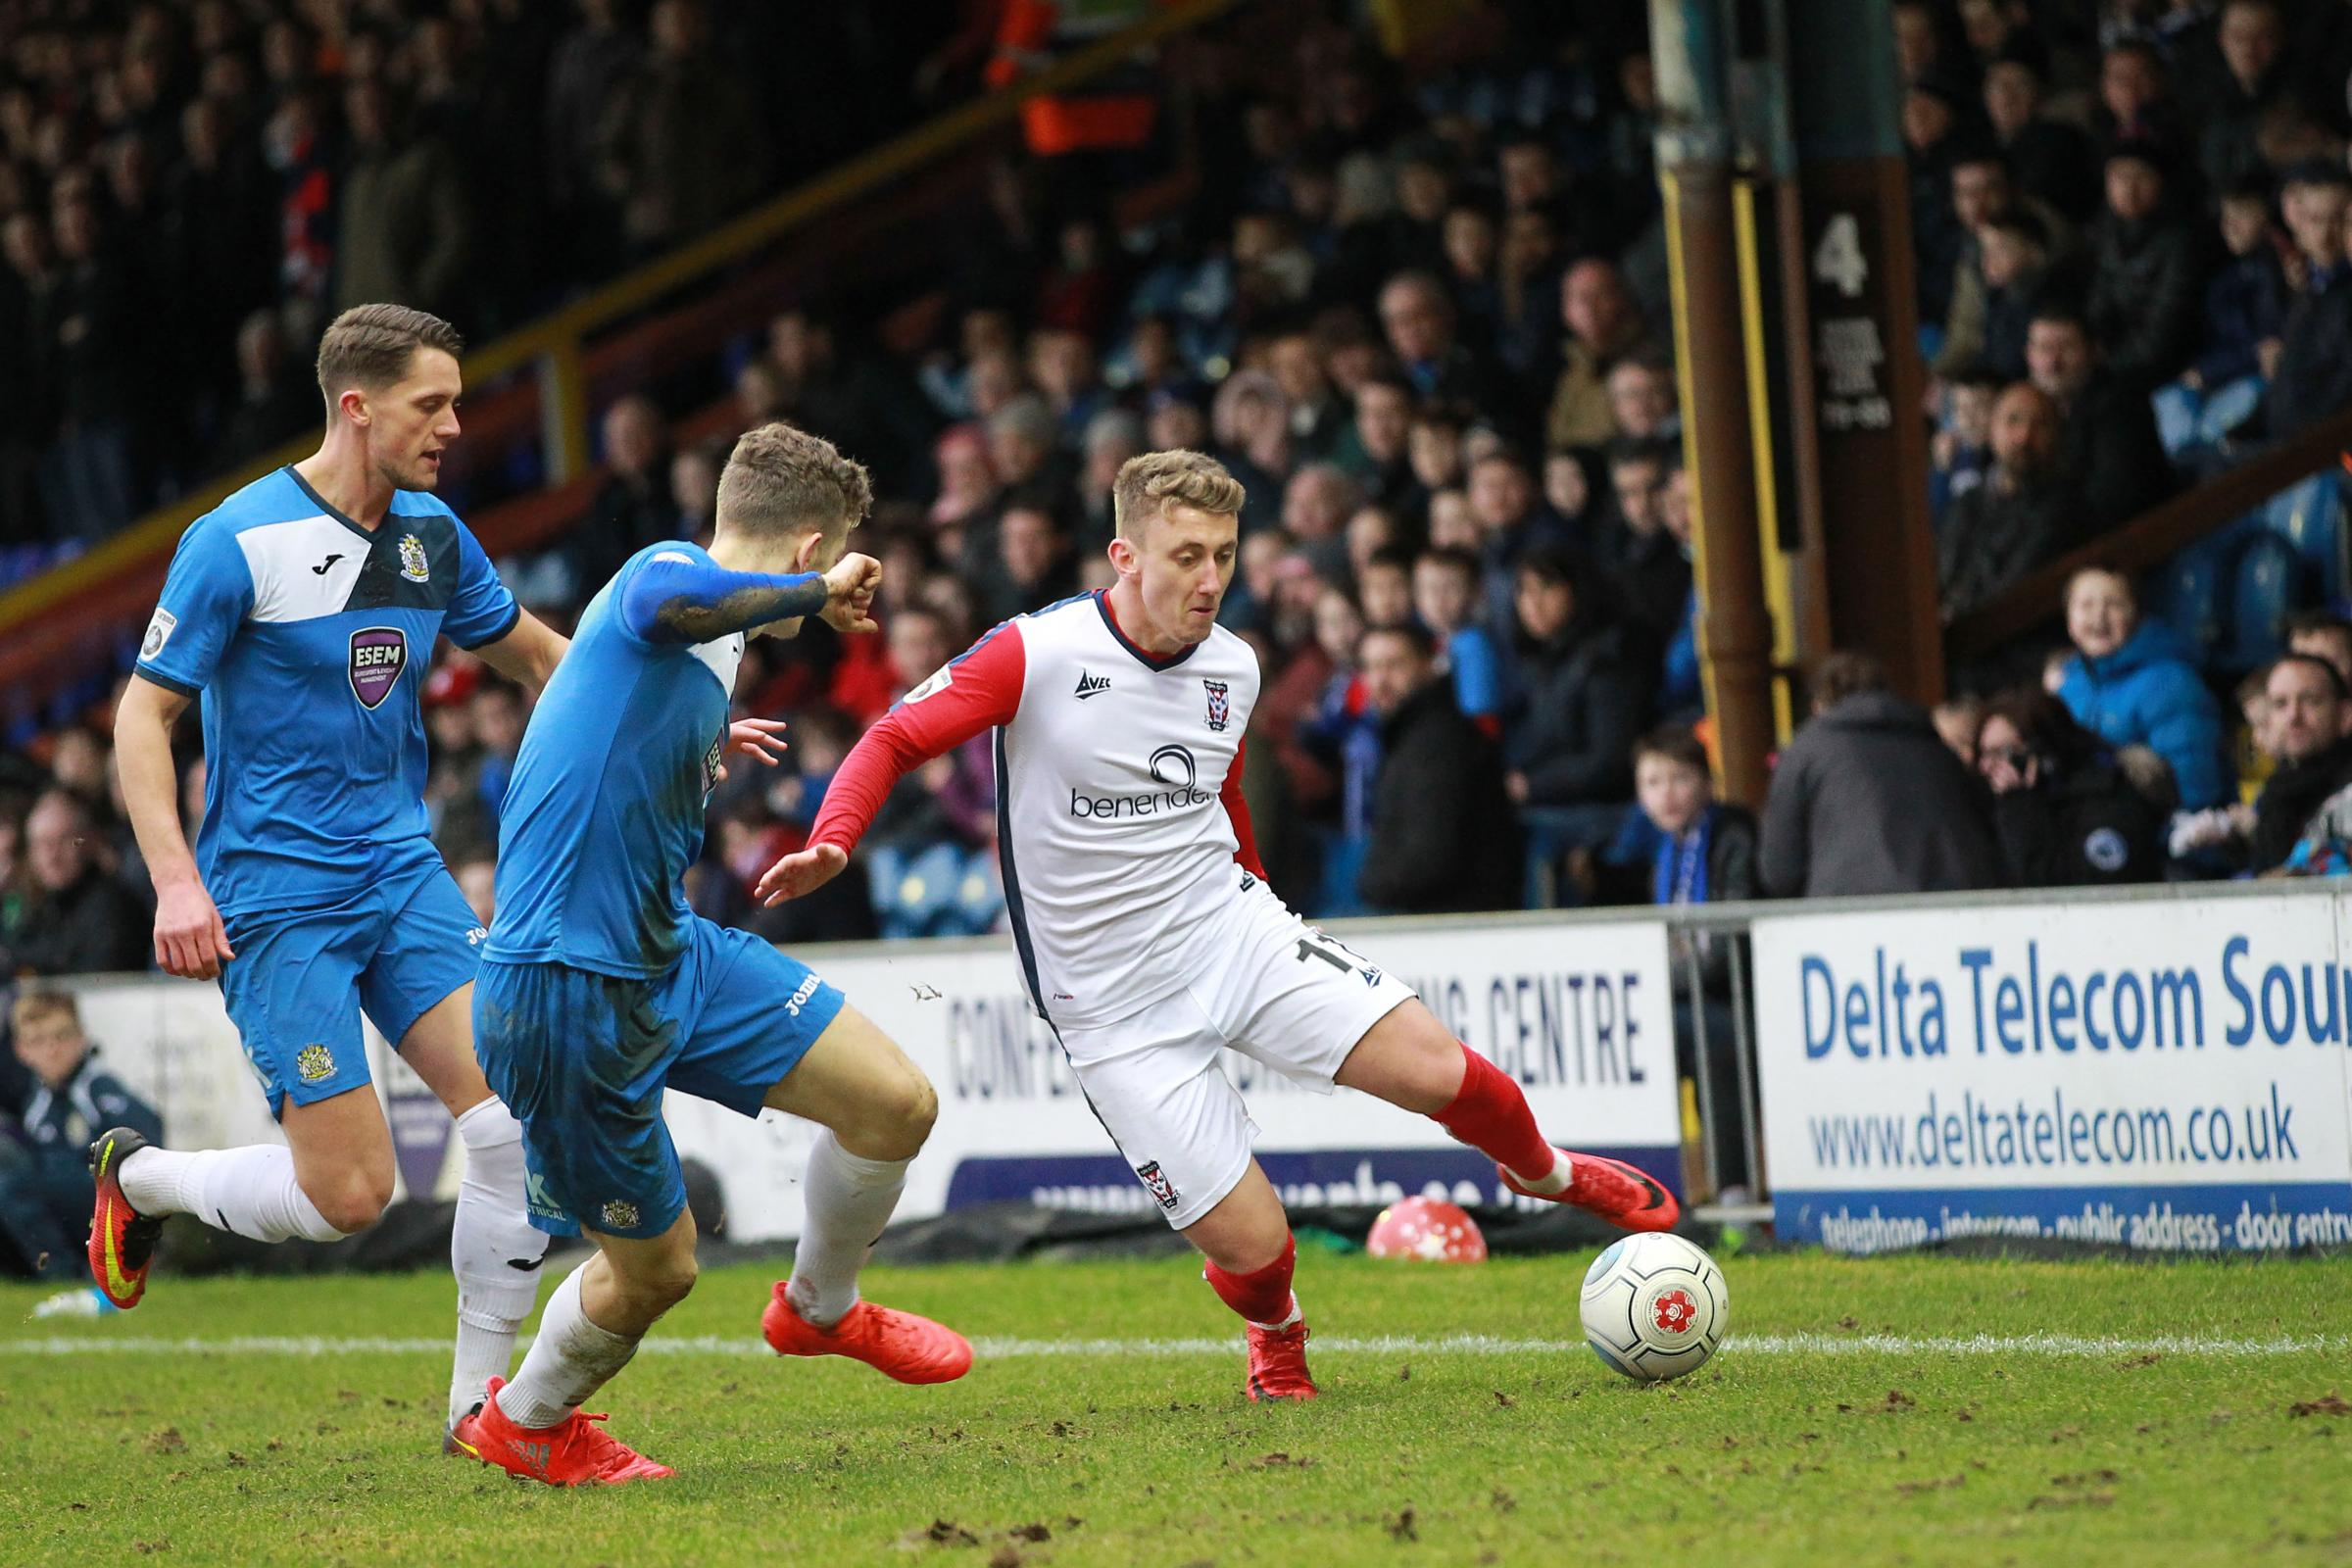 York City marks out of 10 for 2-0 defeat at Stockport